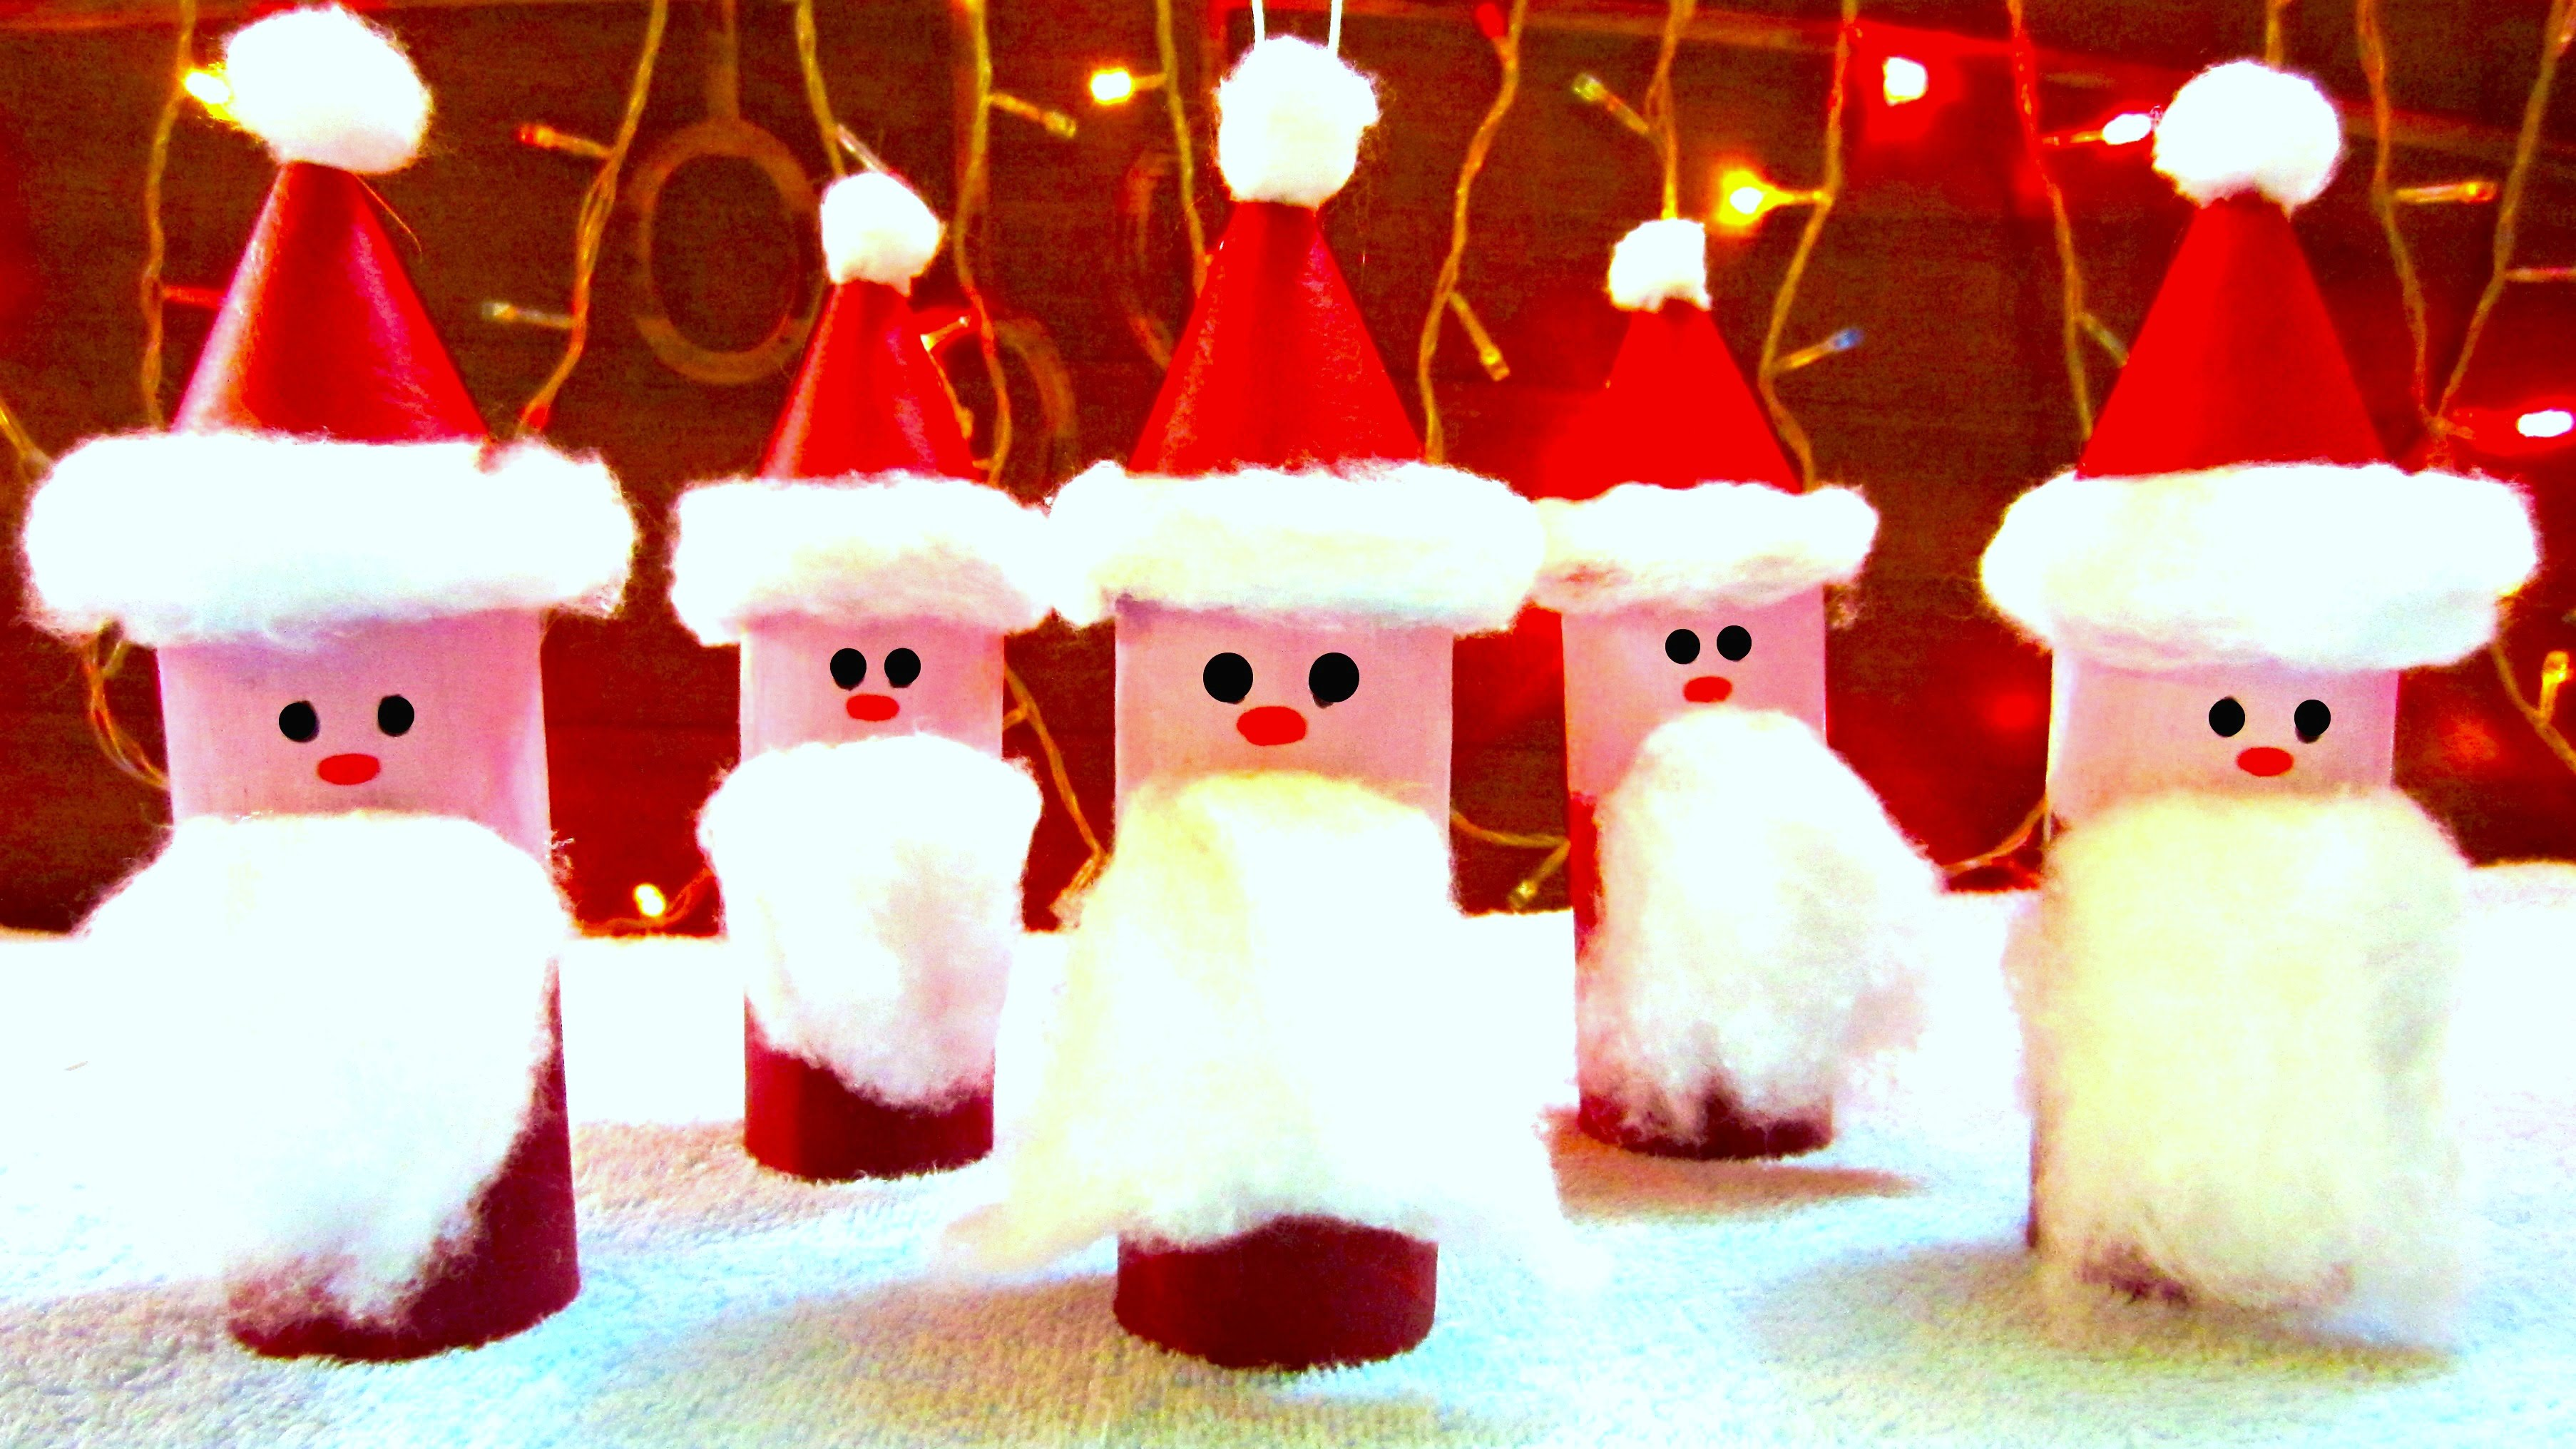 Toilet Paper Roll Santa Claus Ornaments | How to Make Christmas ...